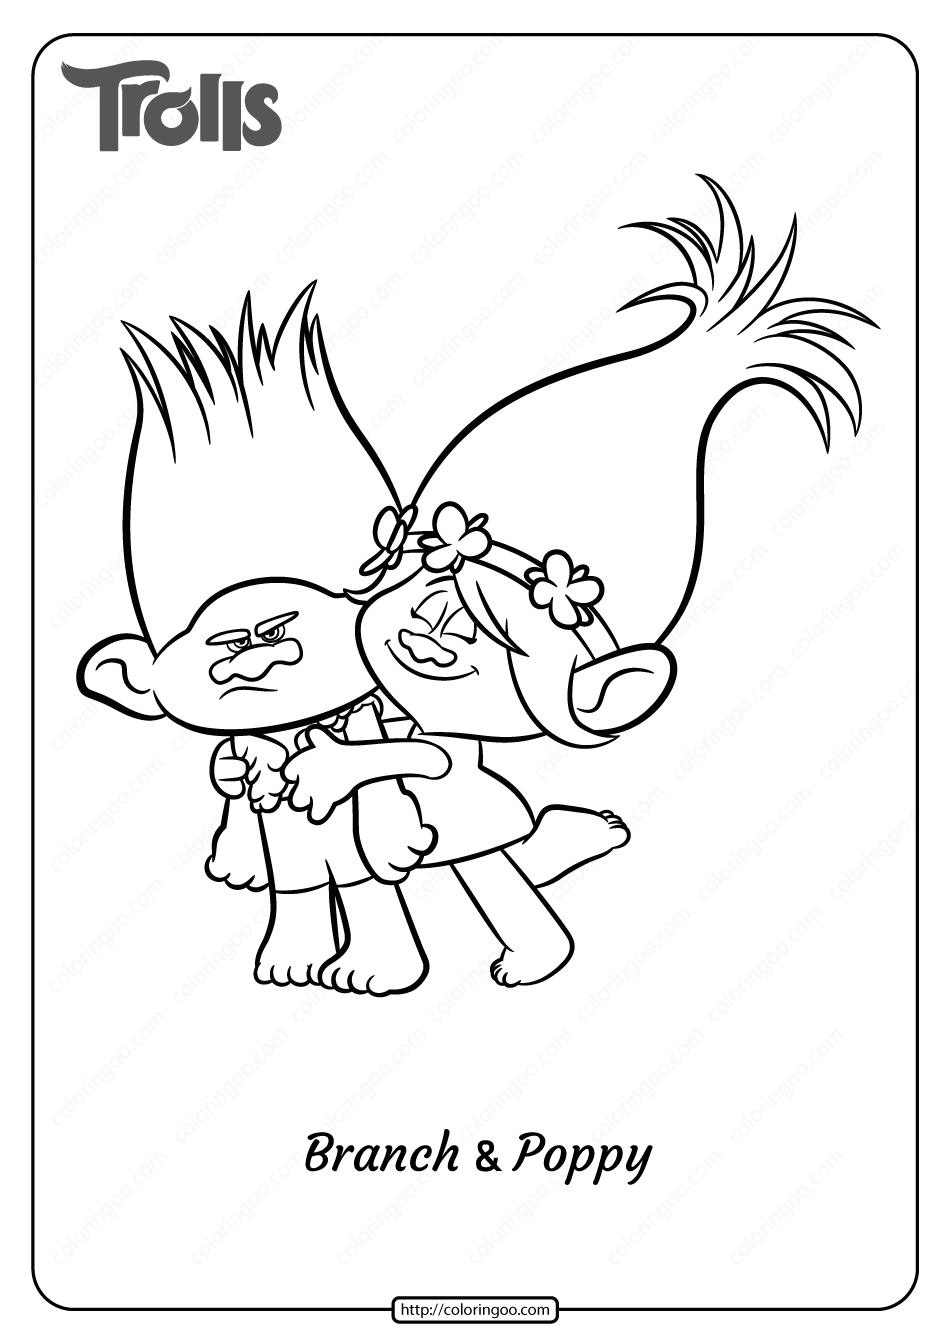 Printable Trolls Branch And Poppy Pdf Coloring Page Coloring Pages Coloring Book Pages Coloring Books